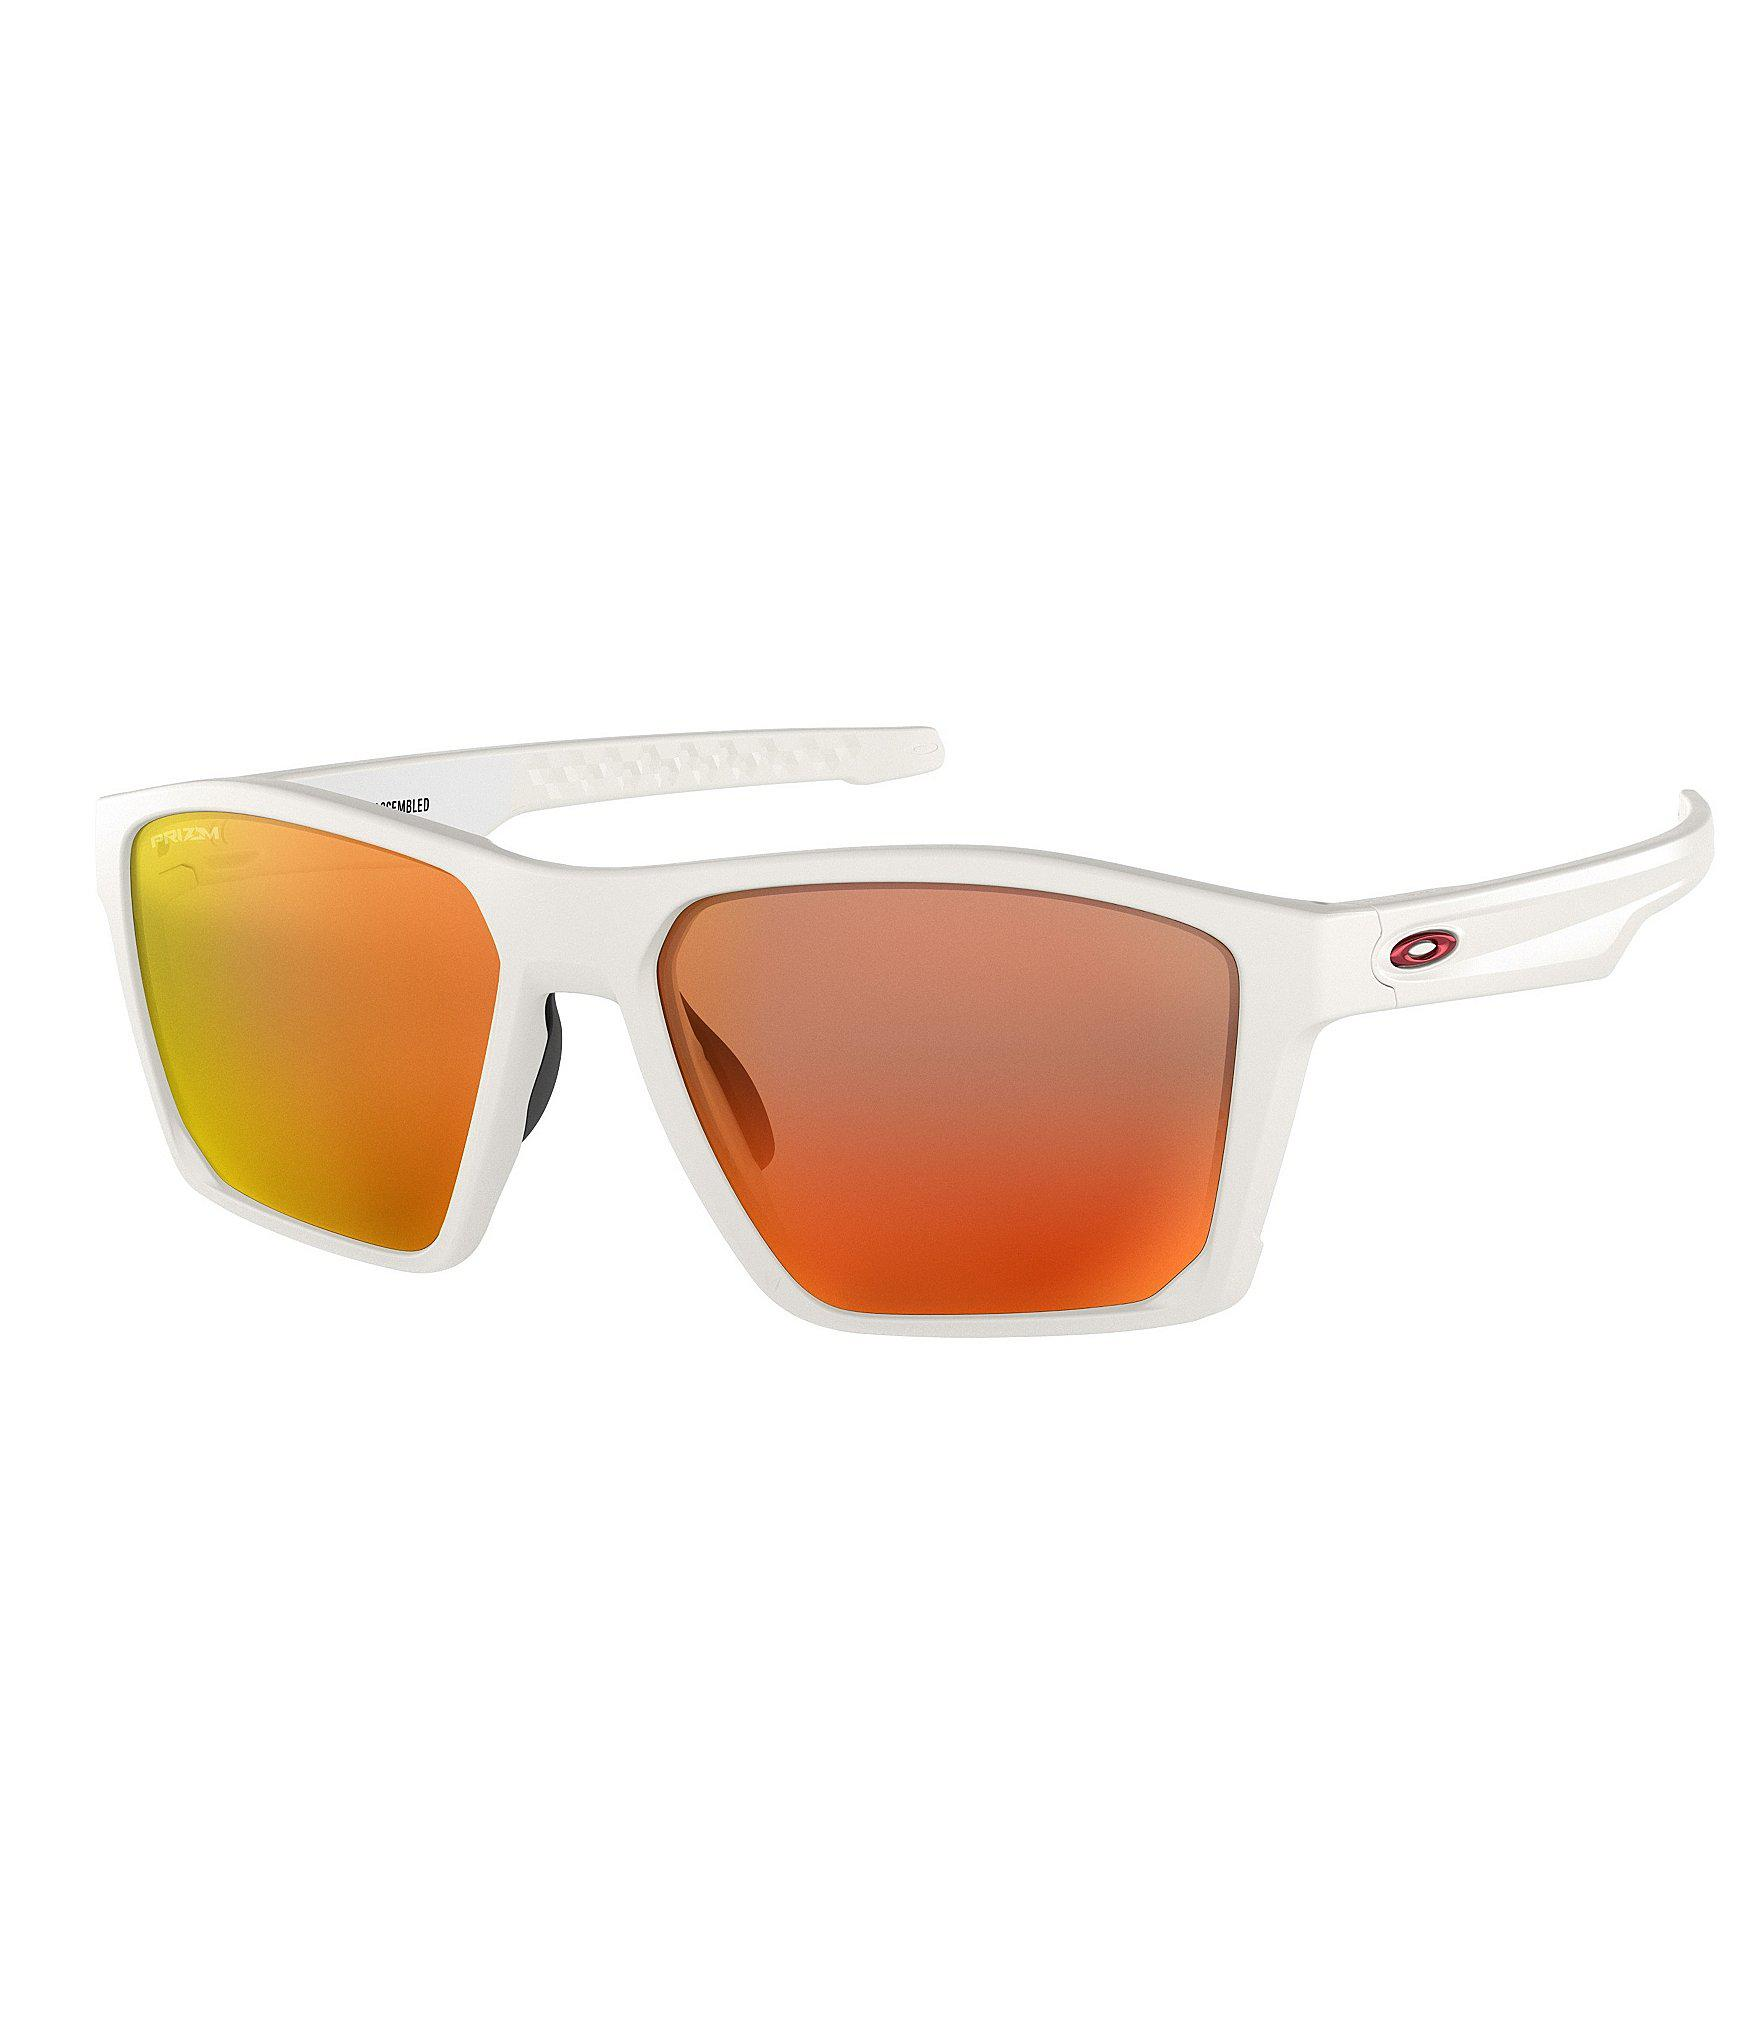 Lyst - Oakley Mens Target Line Orange Lens Sunglasses in White for Men